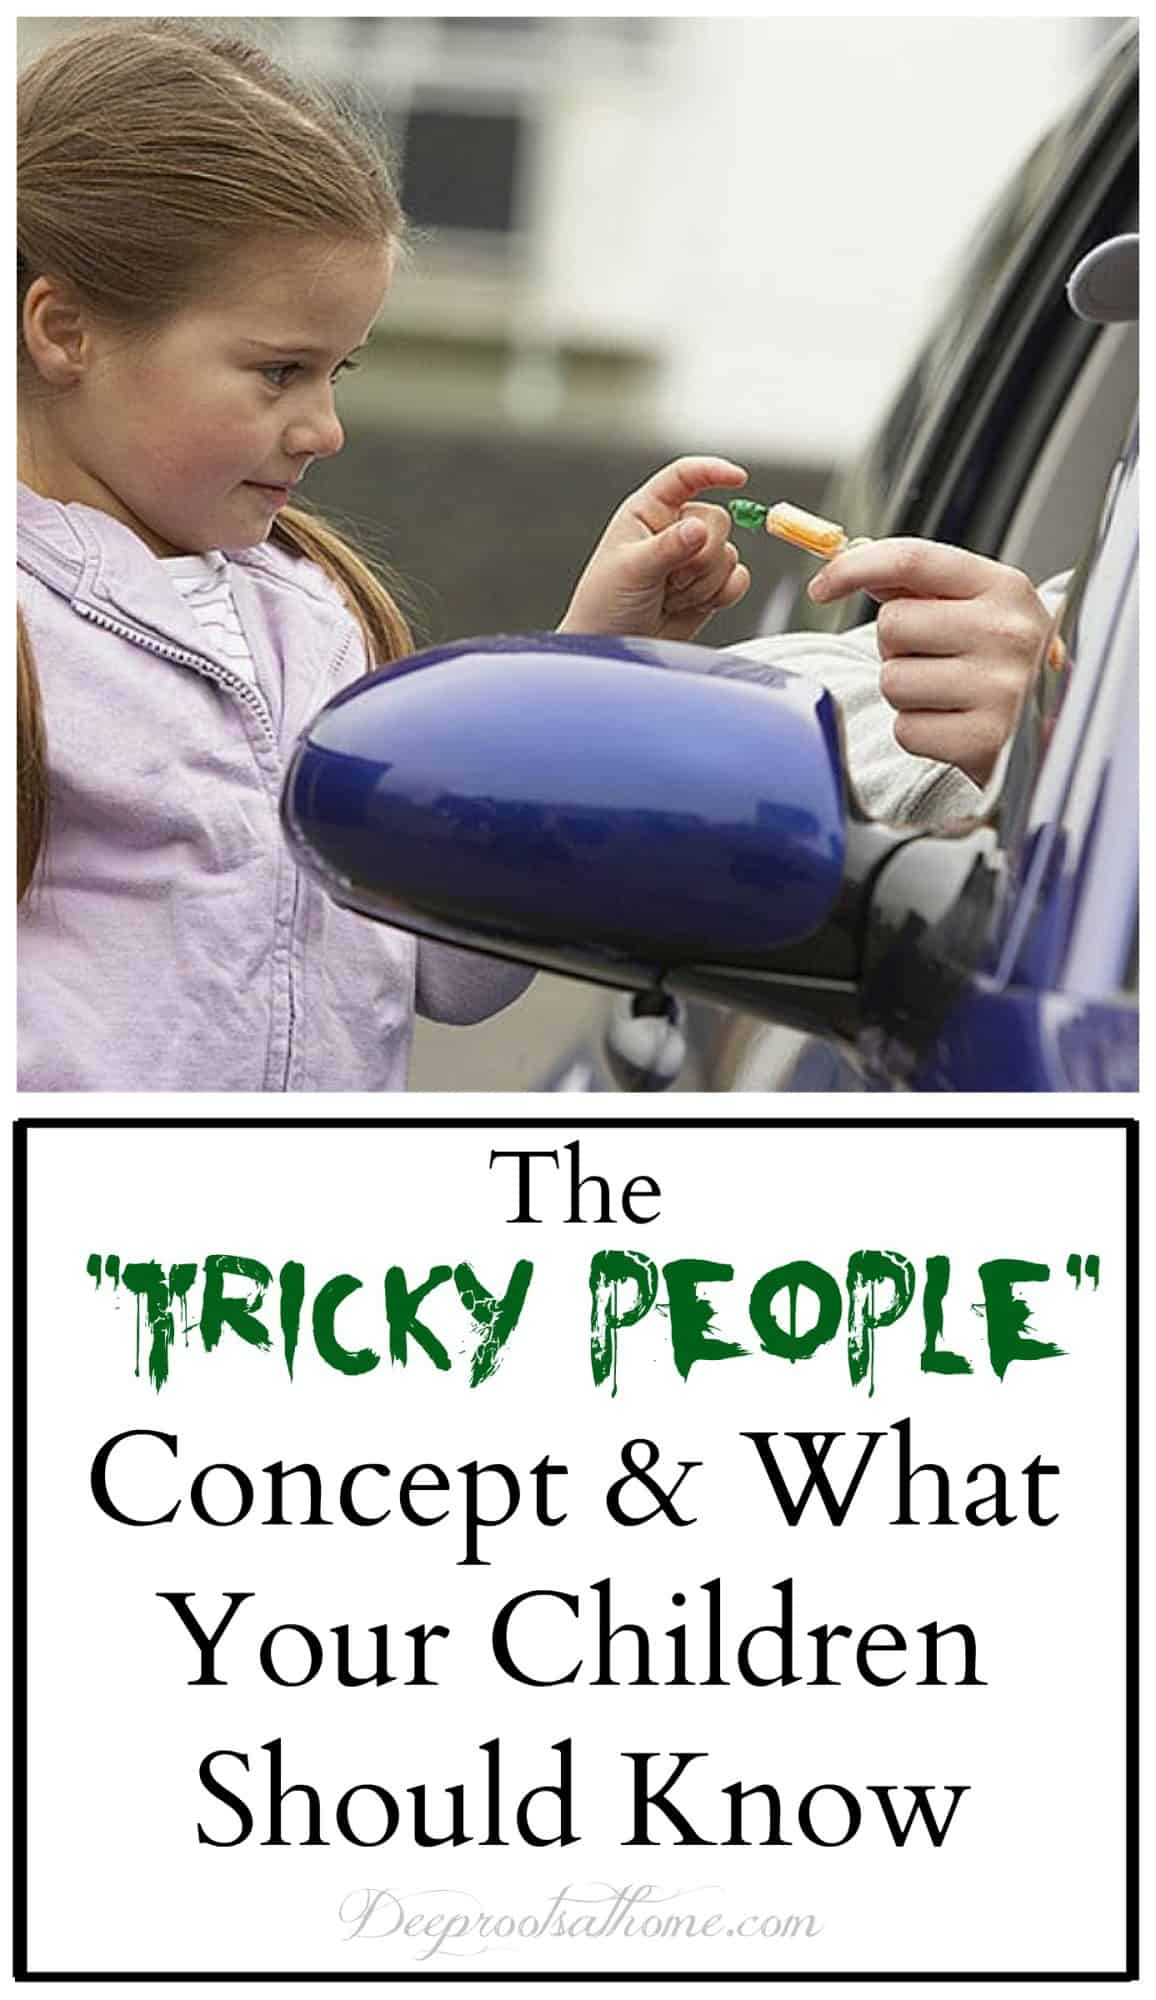 """Tricky People"": What Your Kids Need To Know In This Culture, stay safe rules, building confidence, concept for kids, young children, candy from strangers, Ann Landers quote, successful human beings, teaching kids, be aware, deceit, trickery, safety, lessons for children, understanding, sneaky people, ruptured ovarian cyst, school, real-world experience, perverted strangers, save a life, hooligans, backstory, family training, creeps, Pattie Fitzgerald, Safe Ever After, life-saving information, tips, rules, knowledge is power, empowering kids, family meeting, identifying tricky people, making you uncomfortable, boss of your body, kid-friendly, Super Duper Safety School, child-friendly, common sense, mother, teacher,"